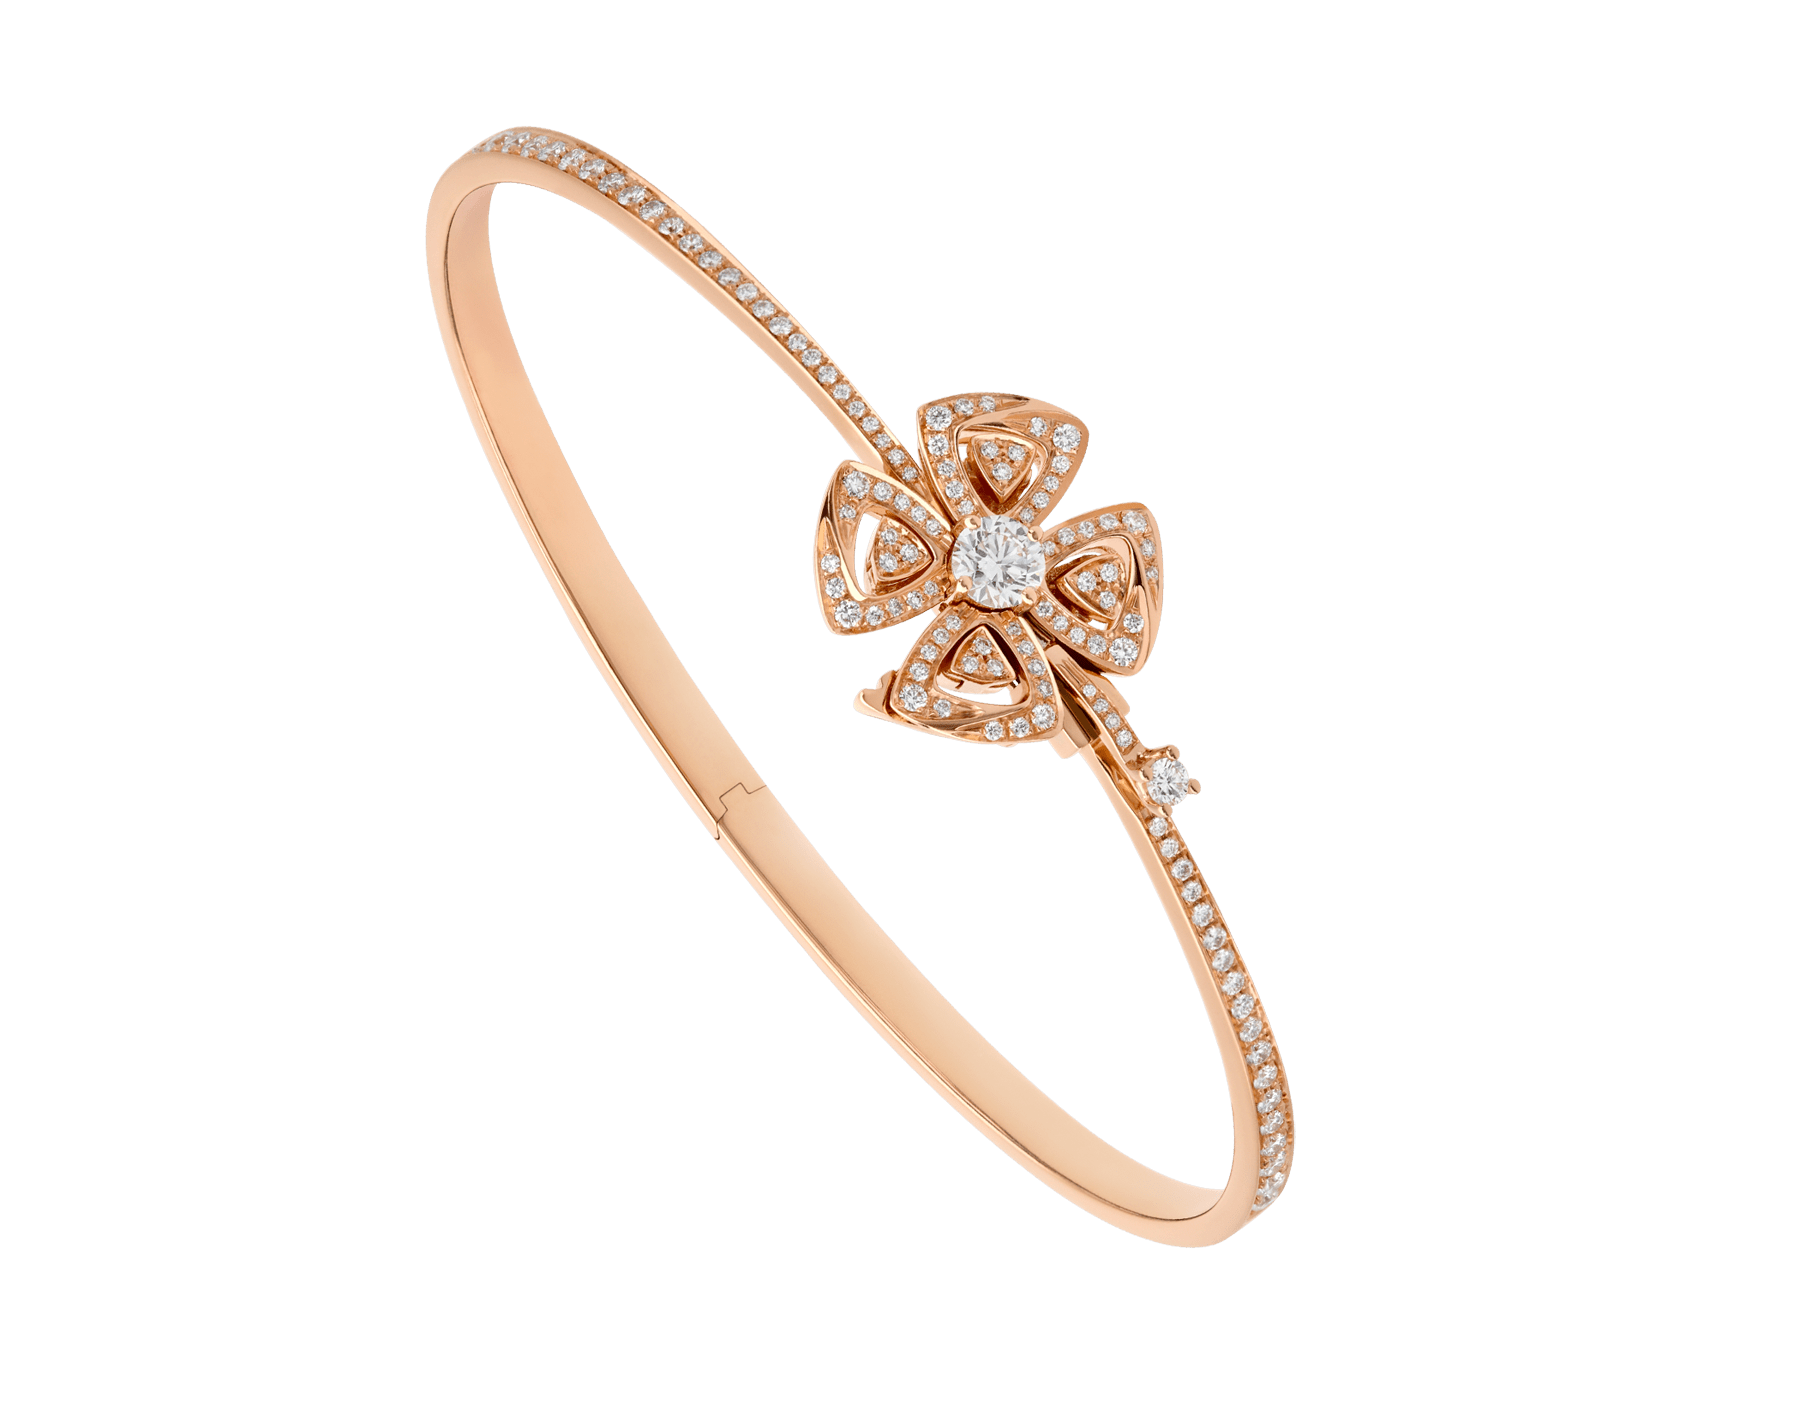 Bracelet Fiorever en or rose 18 K serti d'un diamant de centre (0,30 ct) et pavé diamants (0,63 ct) BR858707 image 1